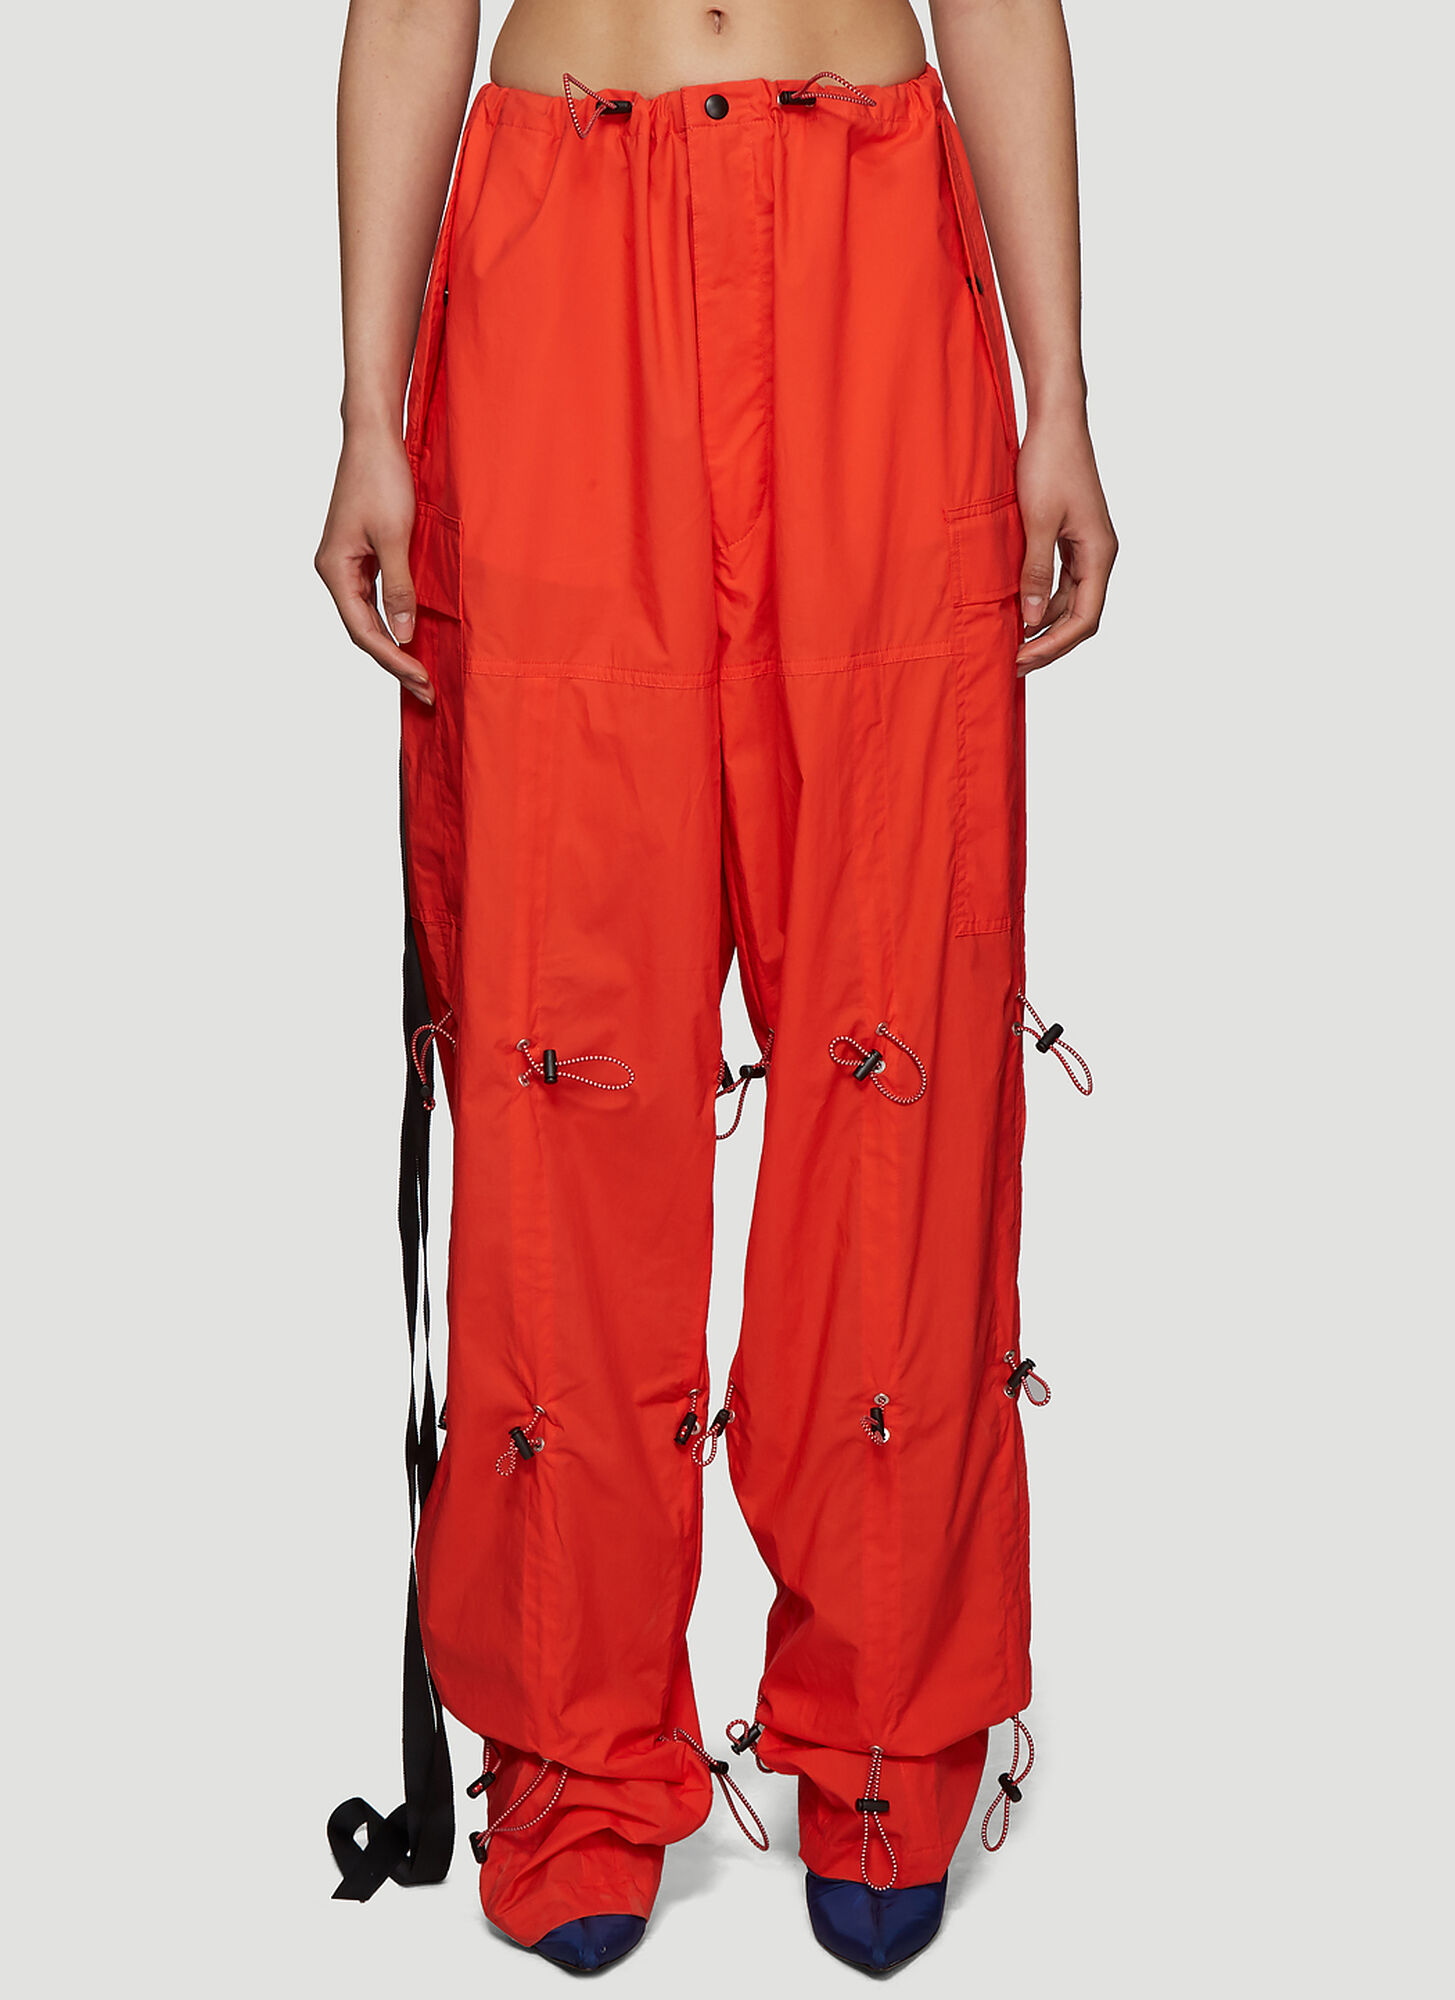 Unravel Project Hybrid Drawstring Pants in Red